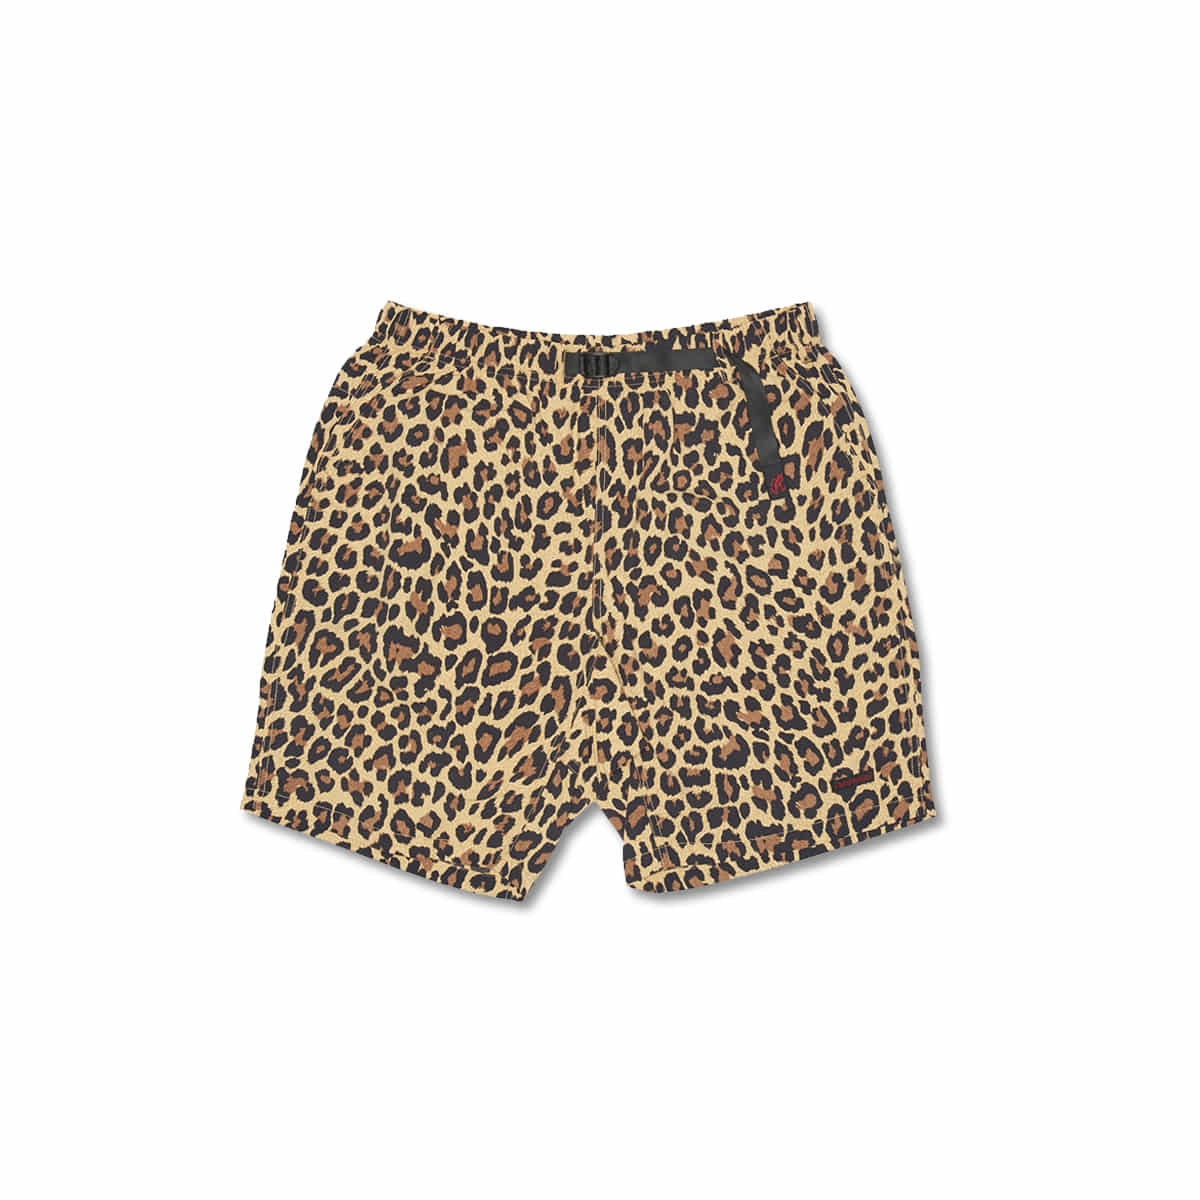 [GRAMICCI] SHELL PACKABLE SHORTS 'LEOPARD'